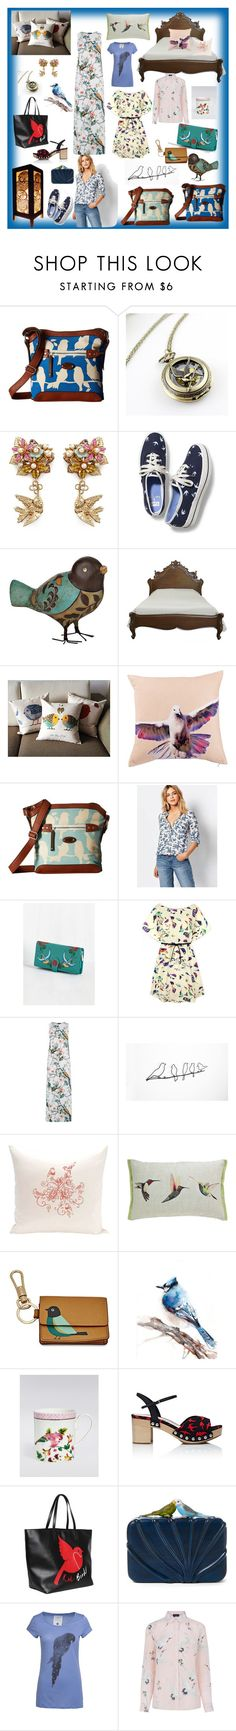 """""""Birds #3"""" by davensan ❤ liked on Polyvore featuring b.o.c. Børn Concept, Miriam Haskell, Keds, Kensie, Oasis, Warehouse, WALL, e by design, FOSSIL and Miu Miu"""